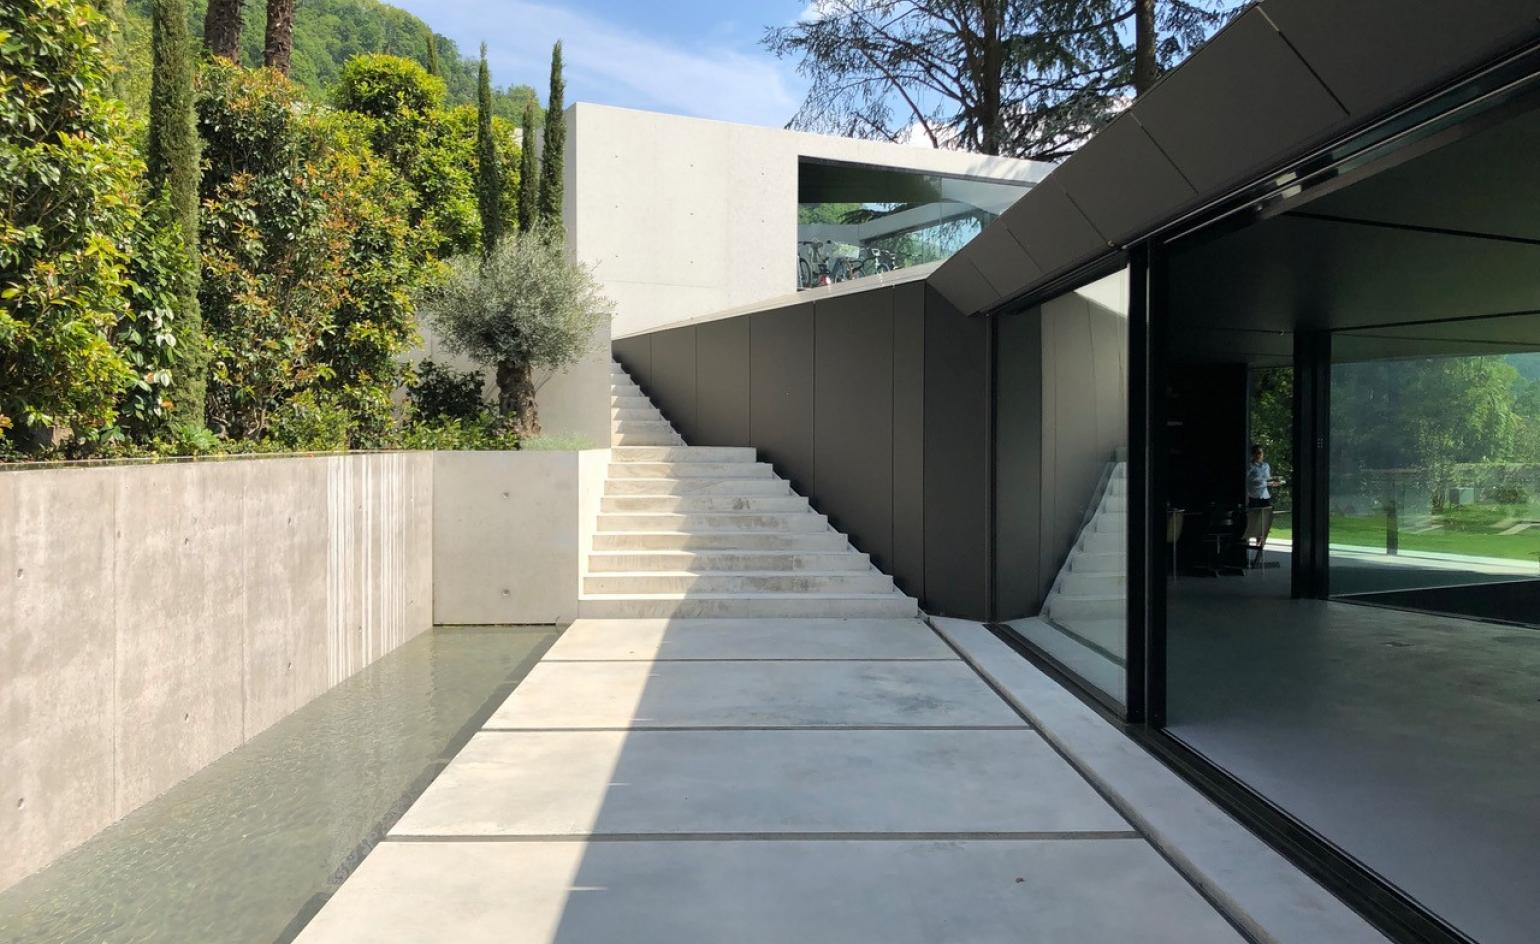 Giacomo Zamboni's Stealth House fits right into its rural Italian location